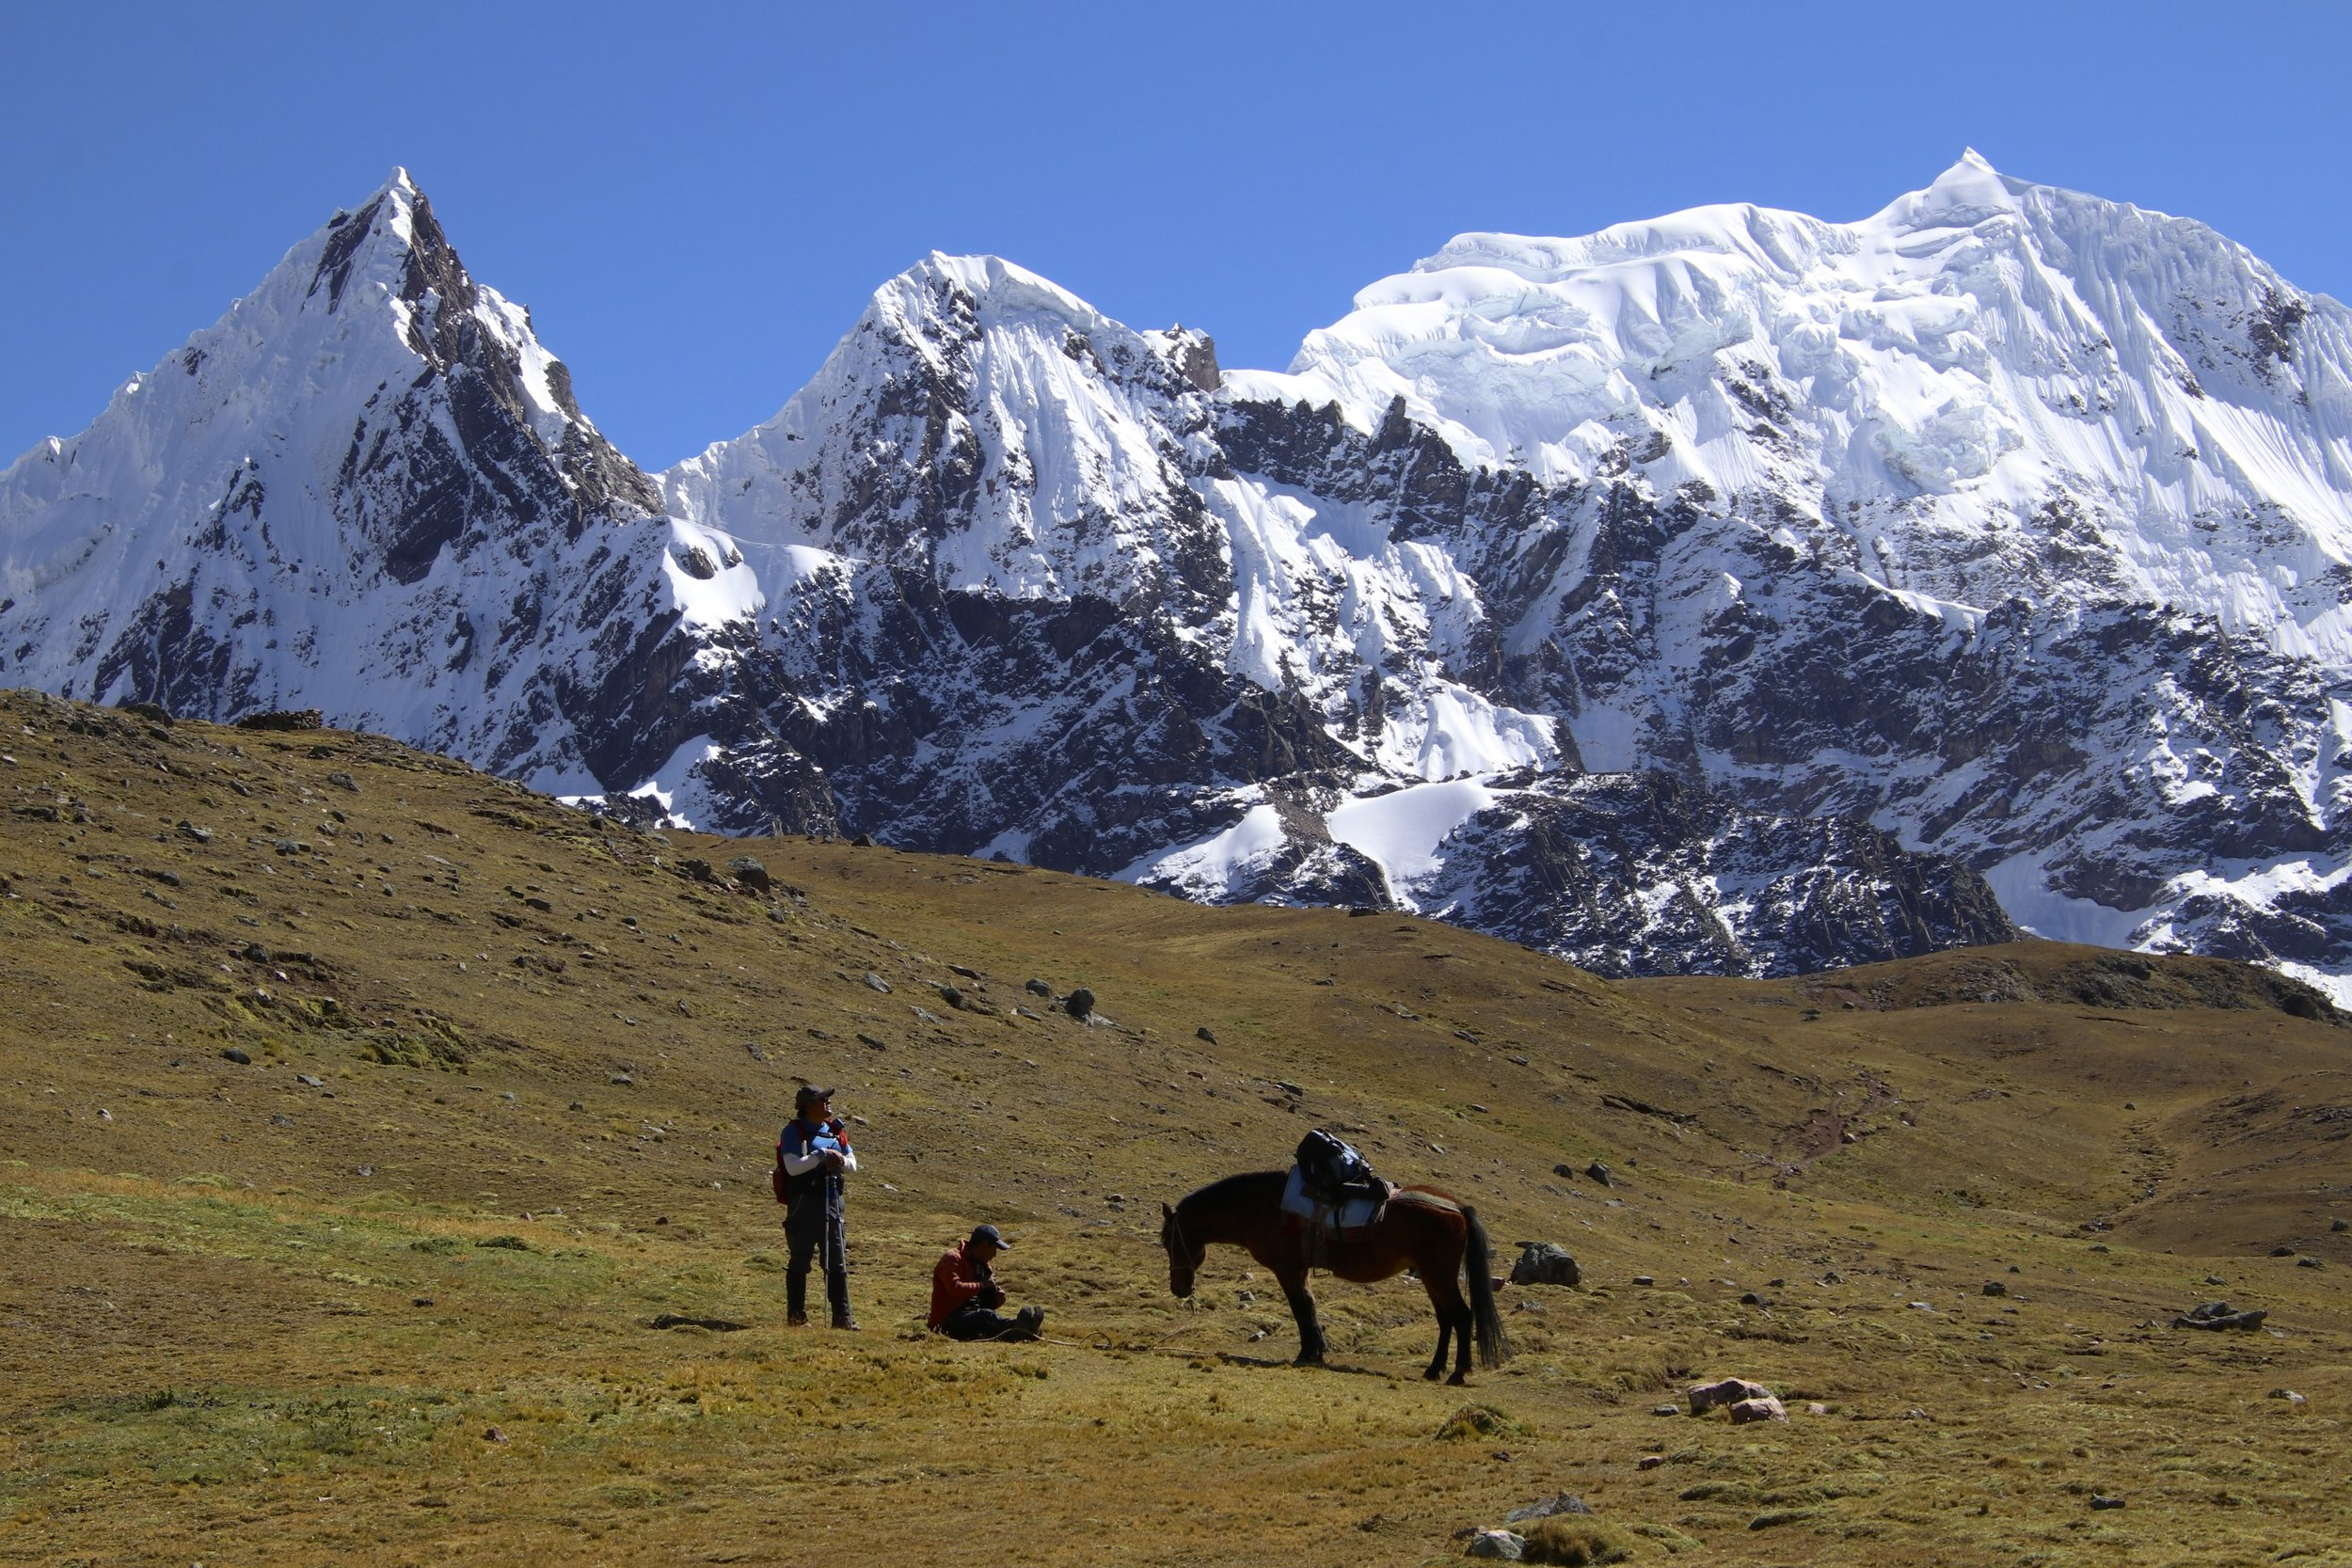 From Pampakancha camp, the trail leads to the fourth high pass Jampa Pass at 5,050m